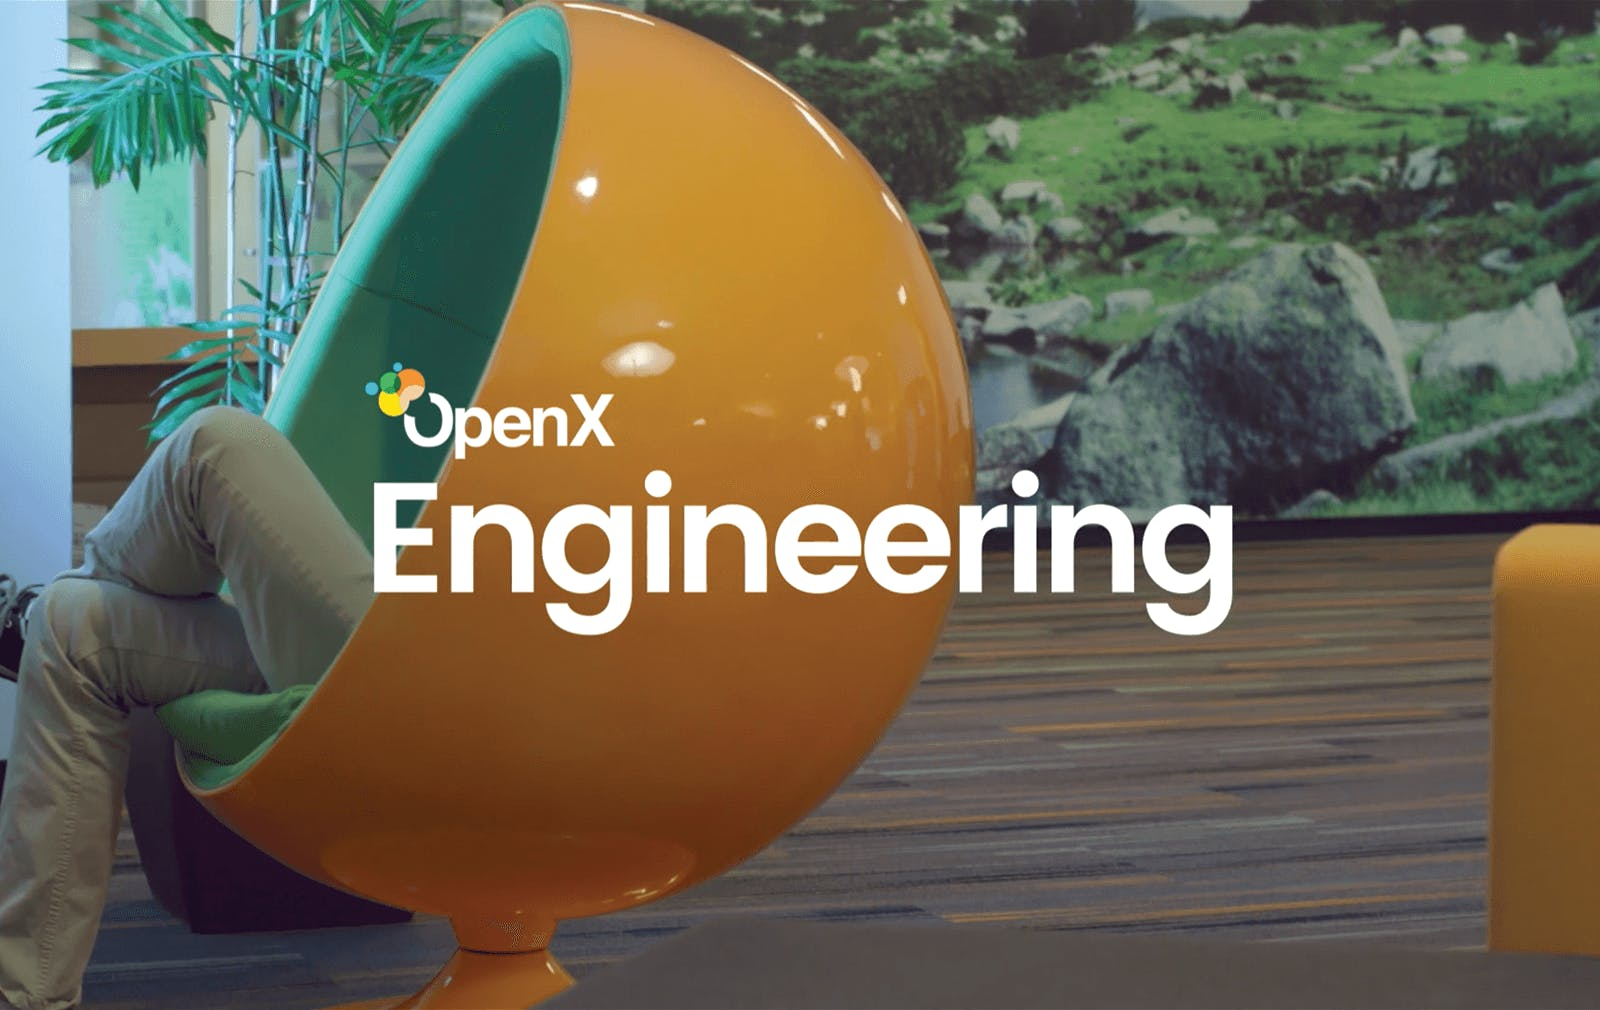 Engineering at OpenX